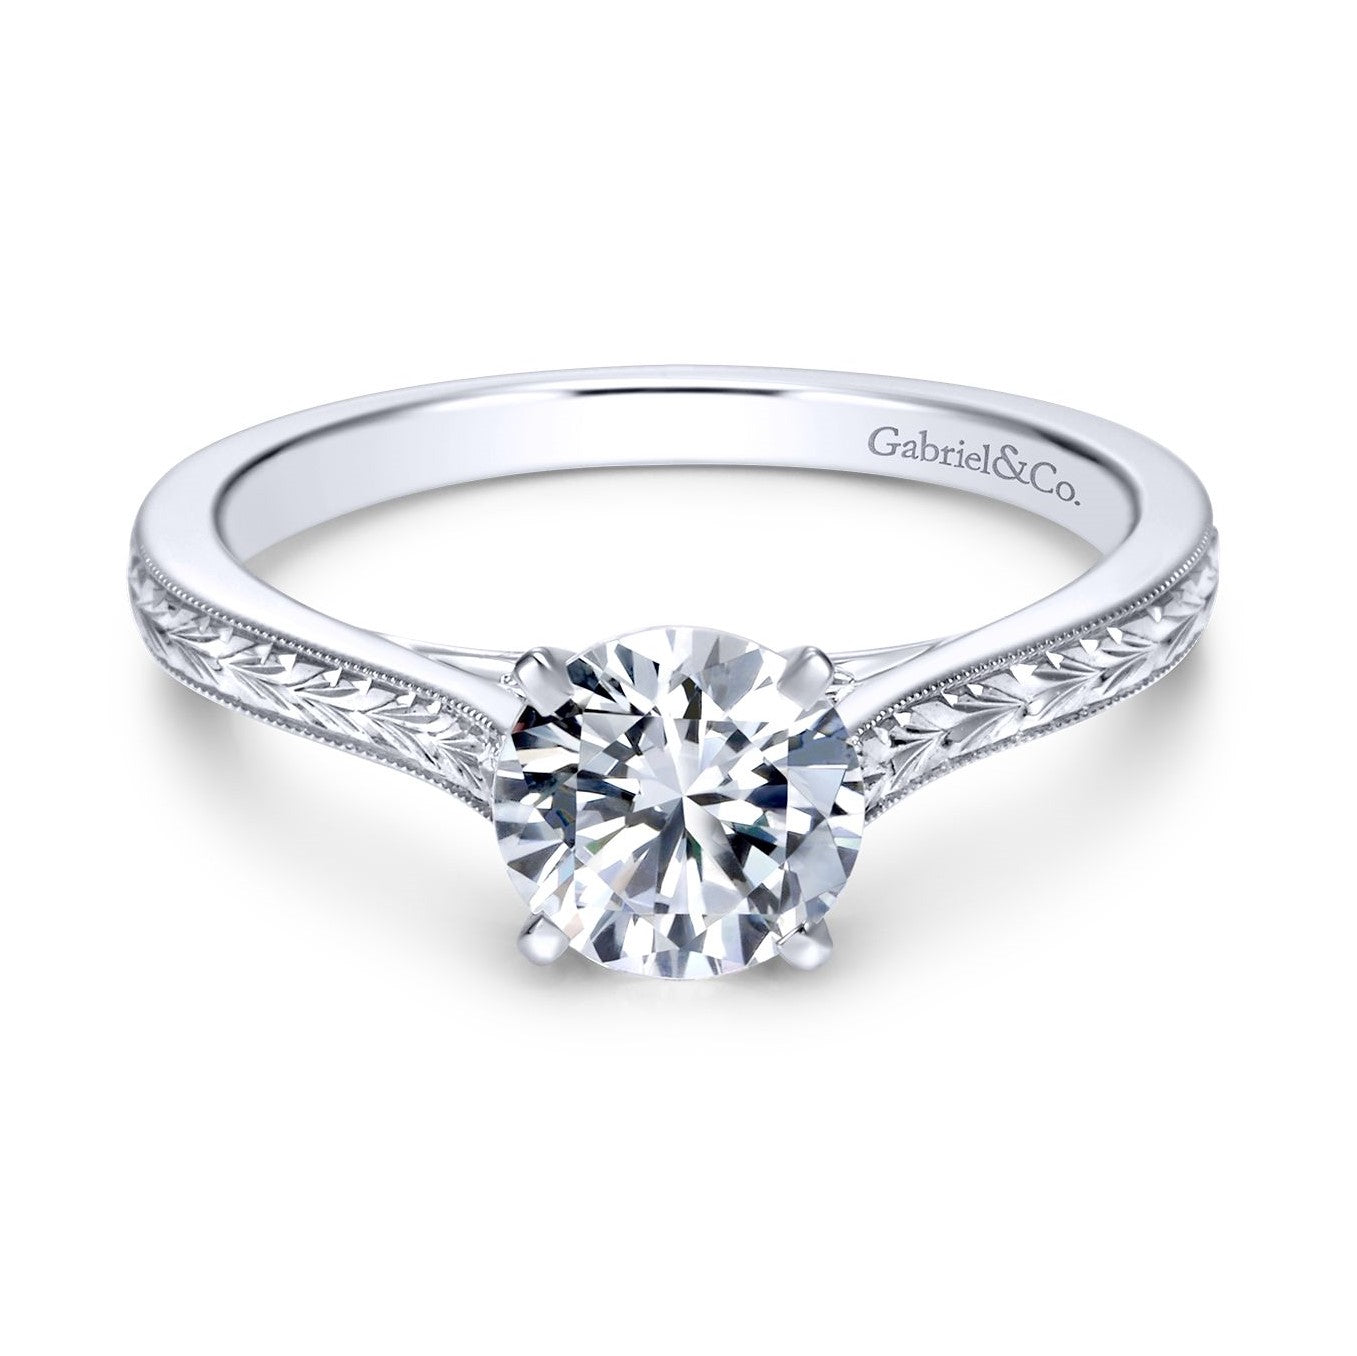 Gabriel & Co. 14k White Gold Round Solitaire Engraved Vintage Style Engagement Ring